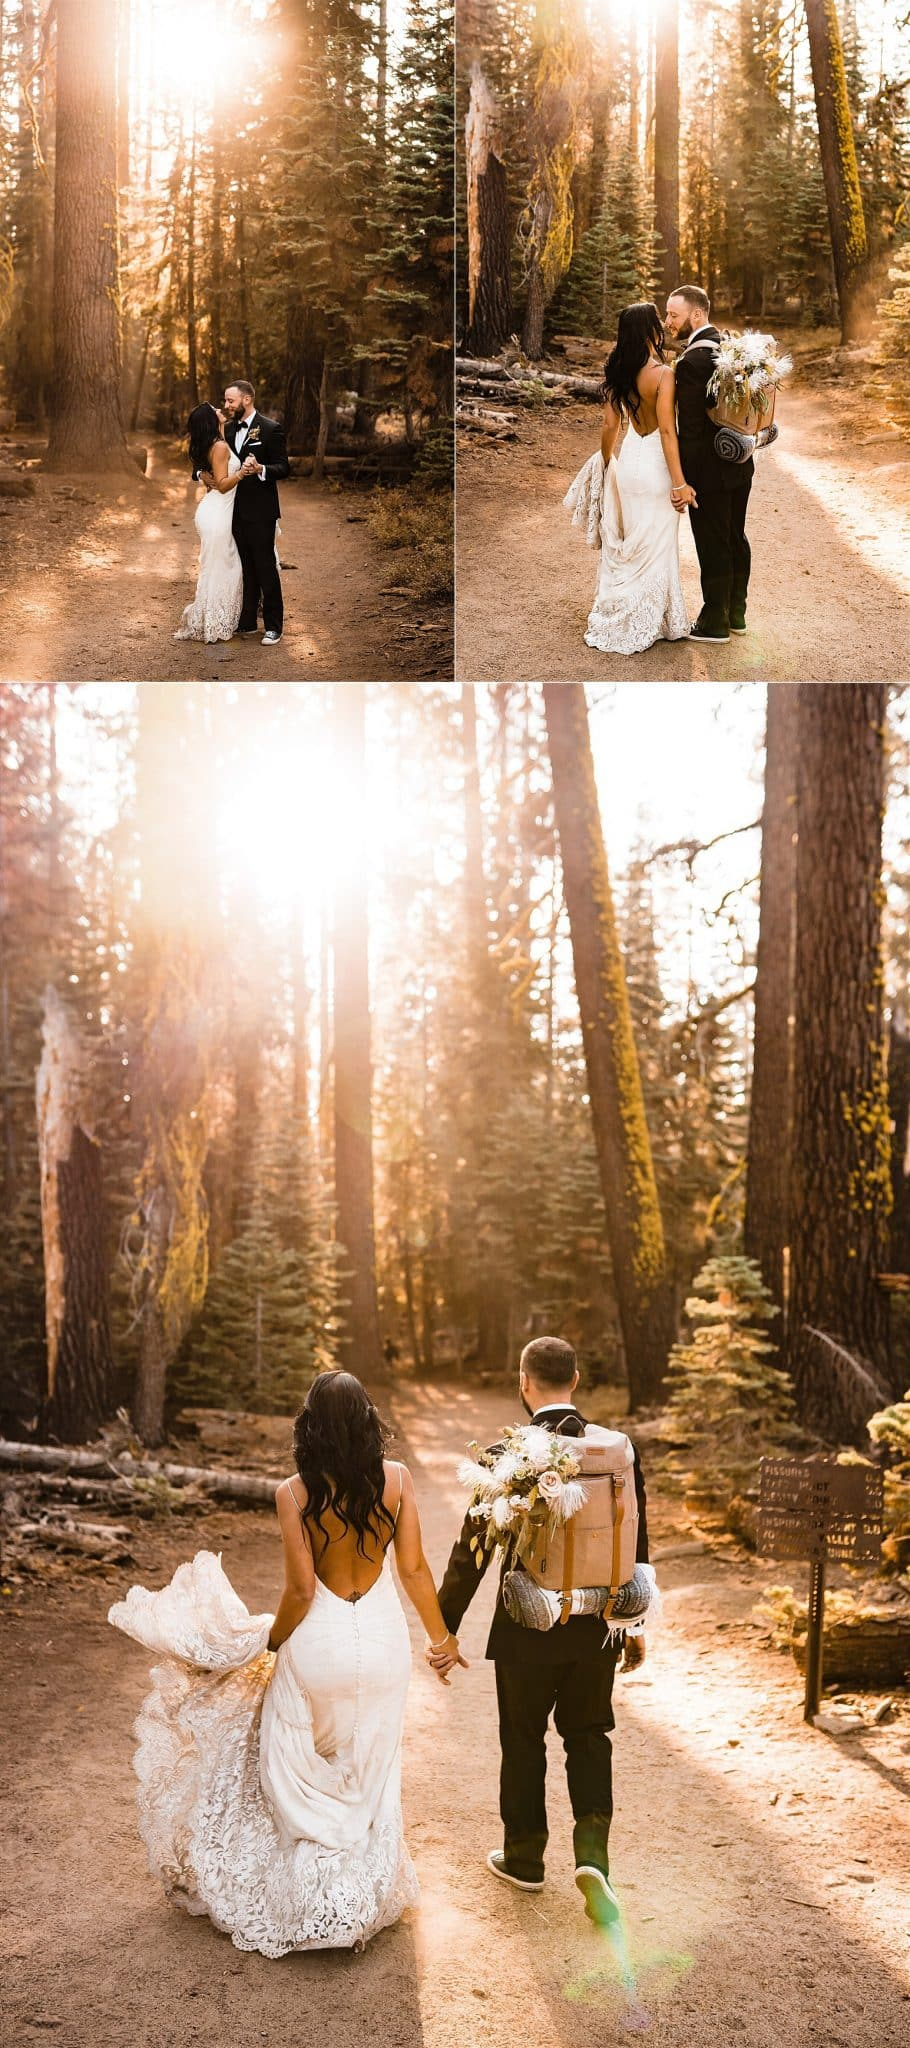 Taft_Point_Elopement_The_Foxes_Photography_0009.jpg